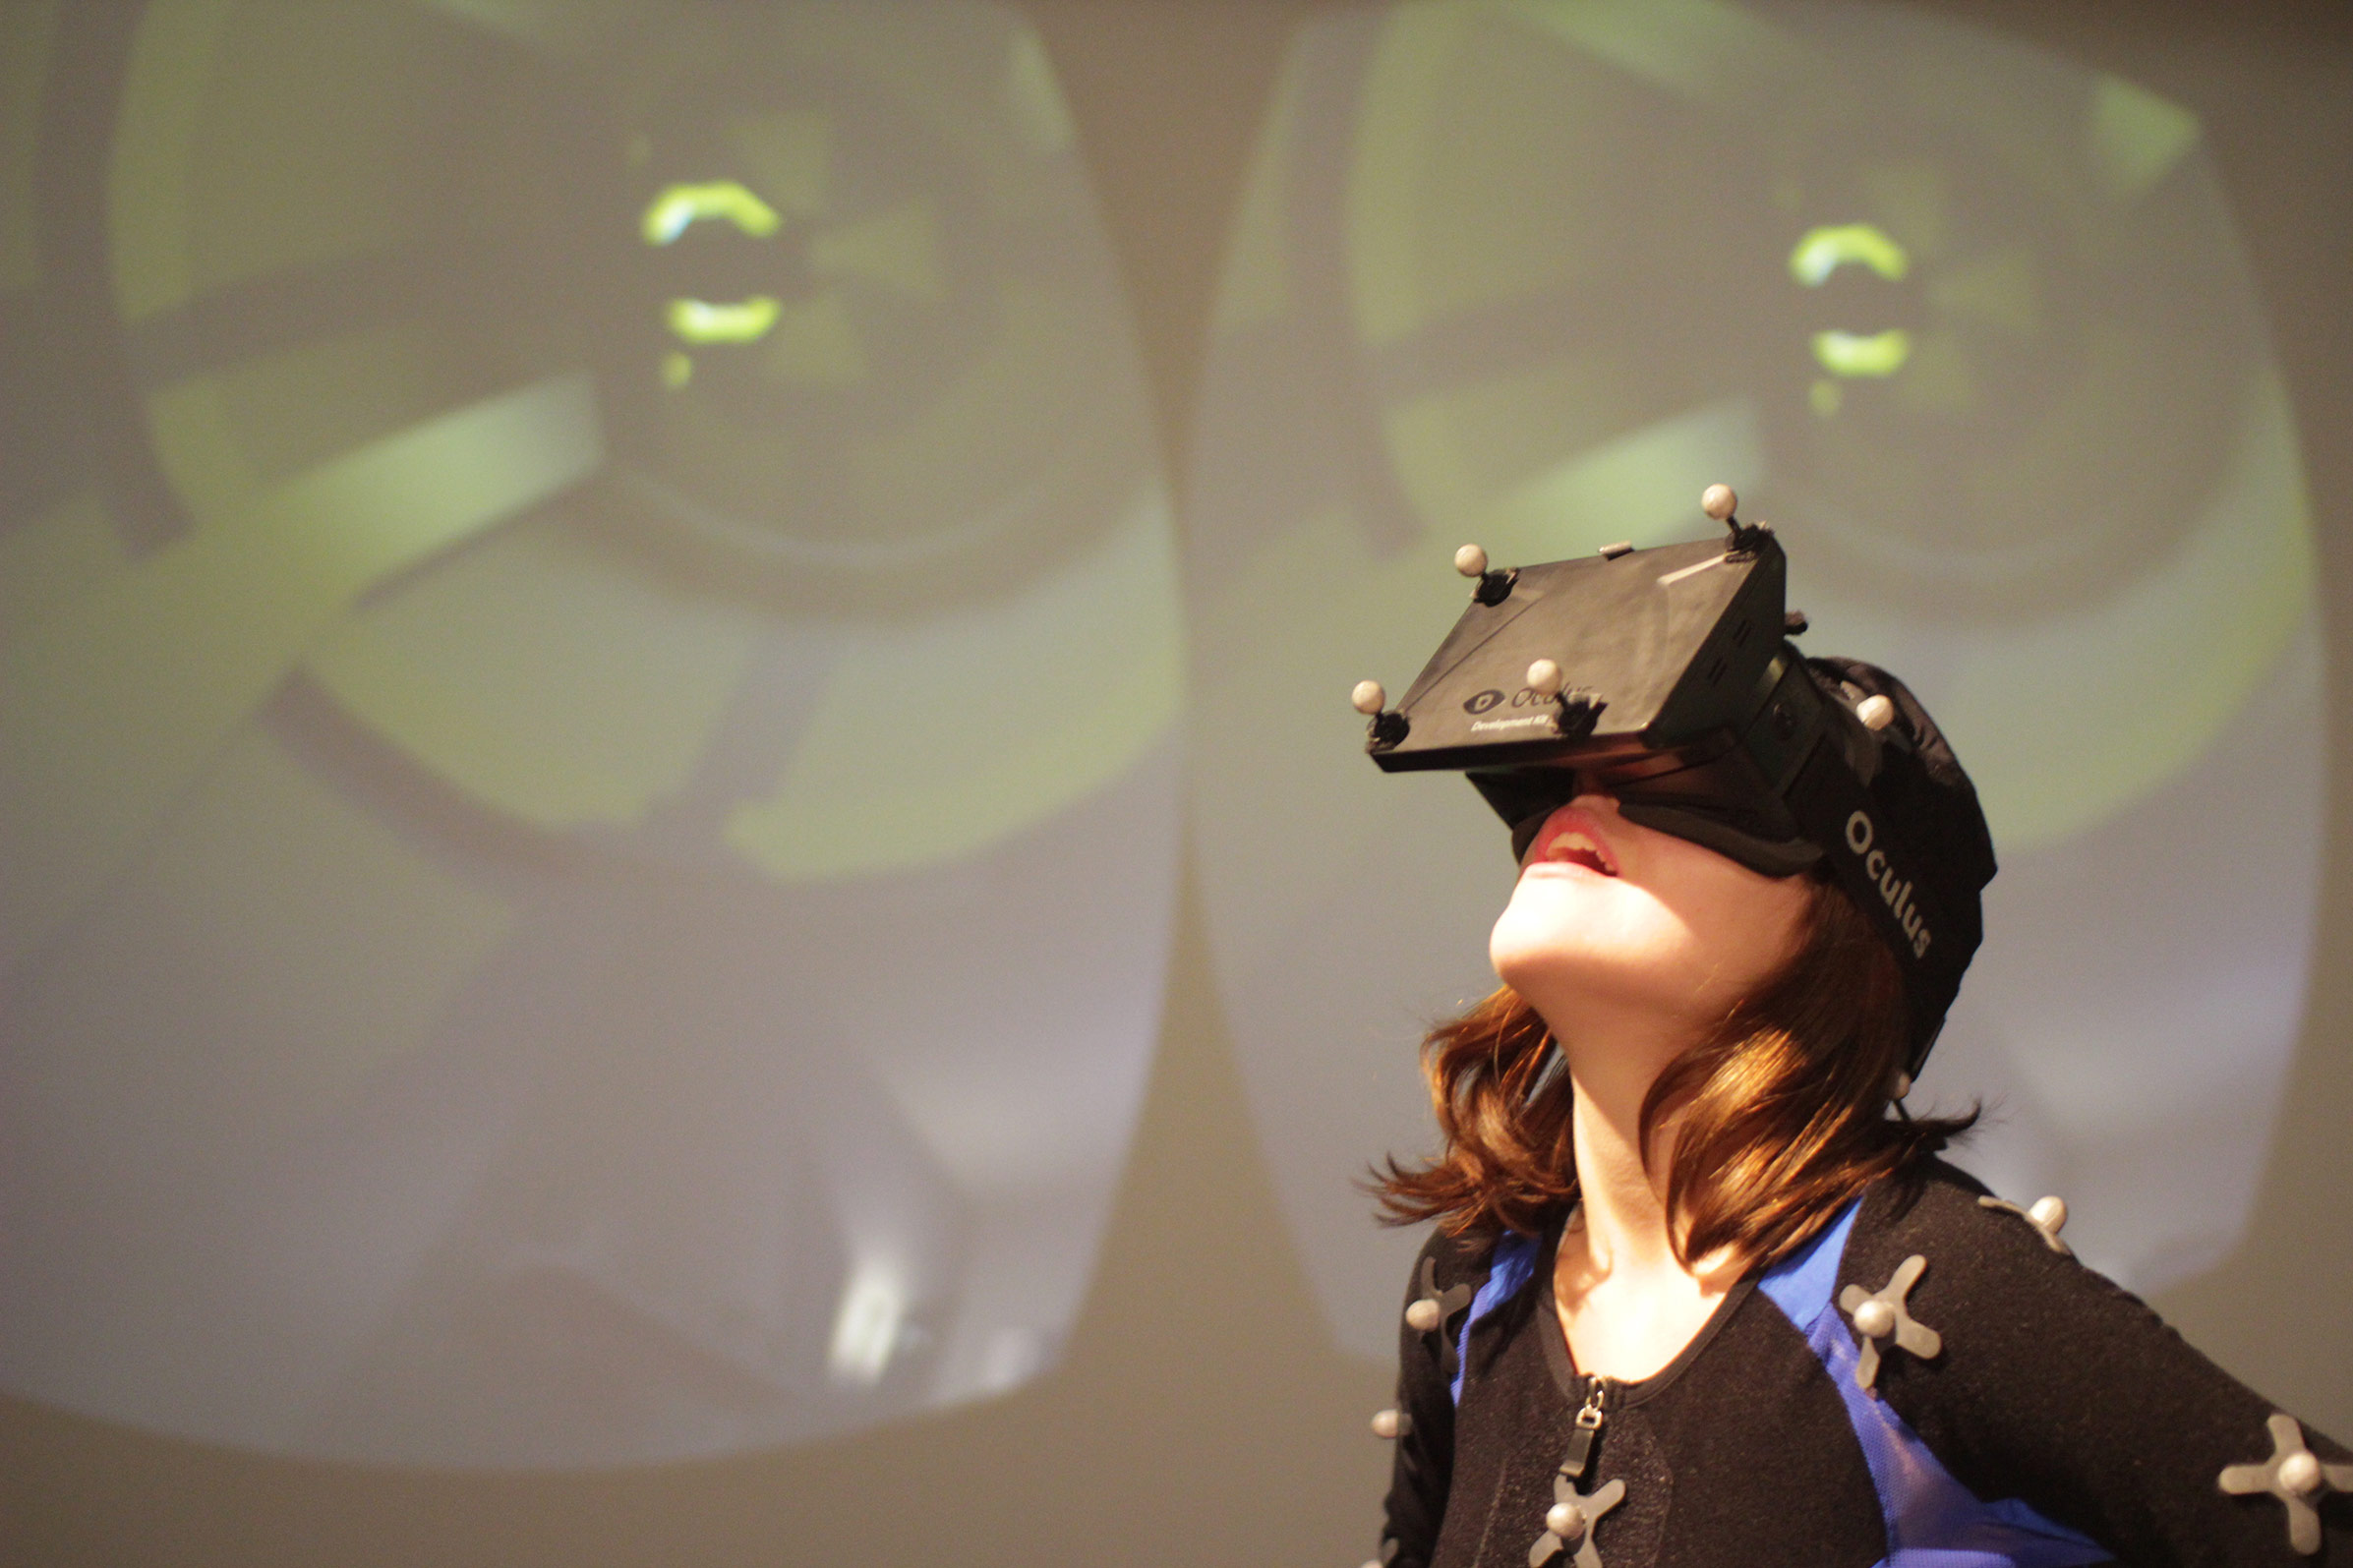 Experiencing Virtual Reality with the Oculus headset